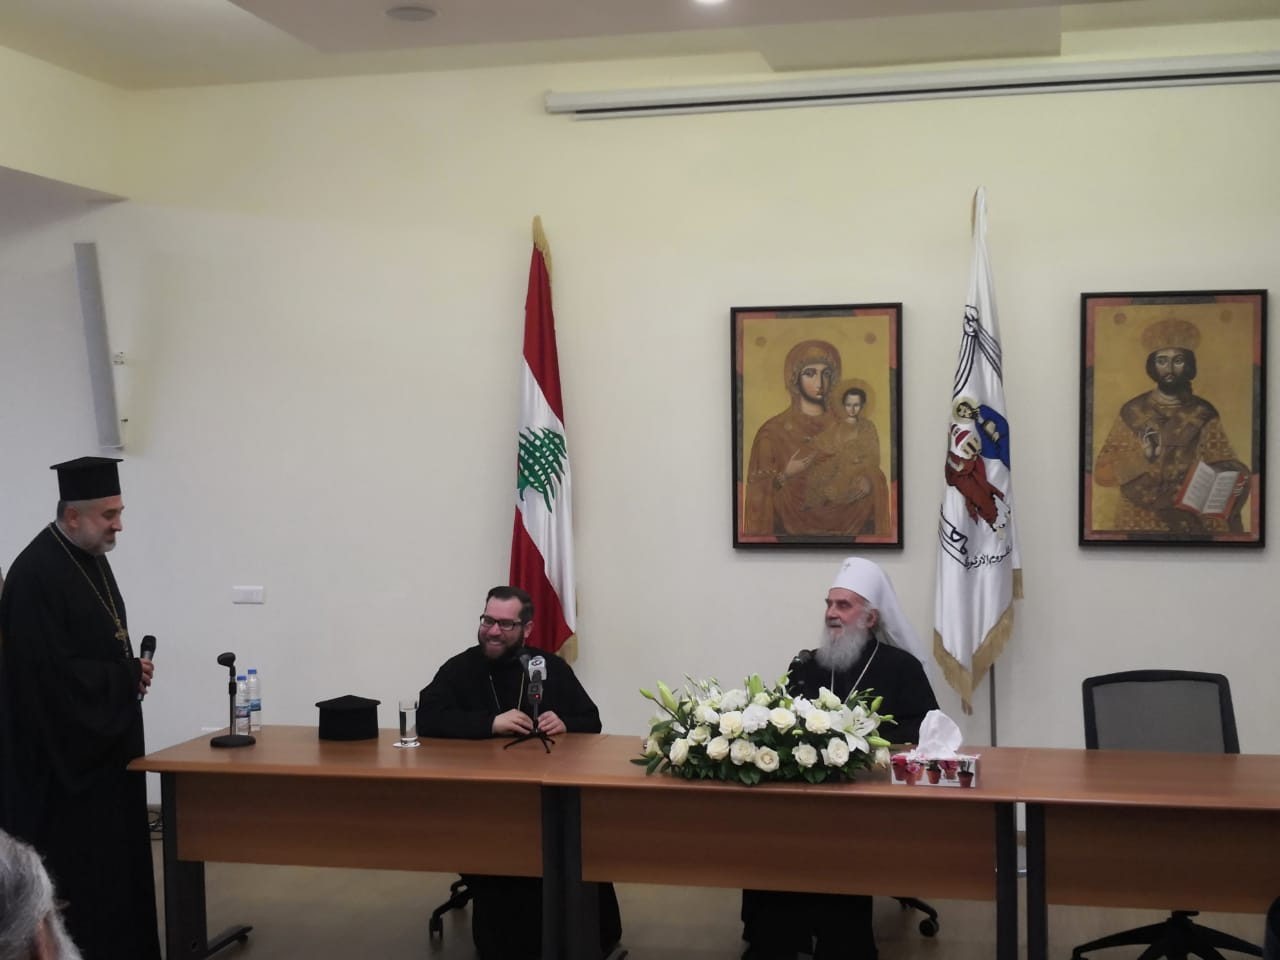 the-historical-visit-of-his-holiness-patriarch-irinej-of-serbia-to-the-st-john-of-damascus-institute-of-theology